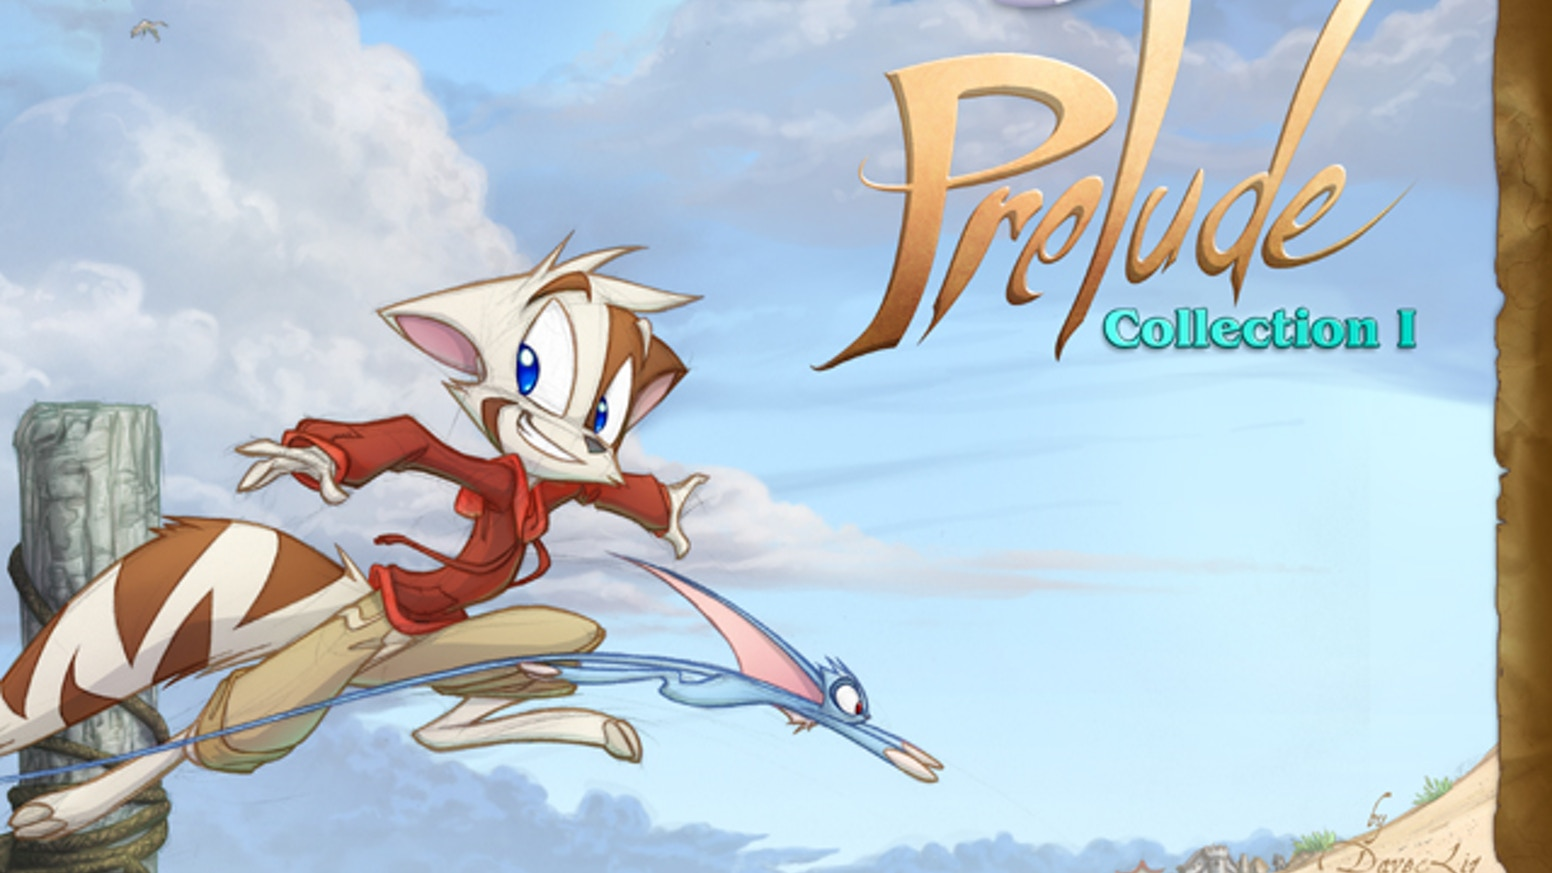 The DK Prelude webcomic, collected in a hefty full-color book.  280 pages of comics, illustrations, concept notes, and cartoon fun.